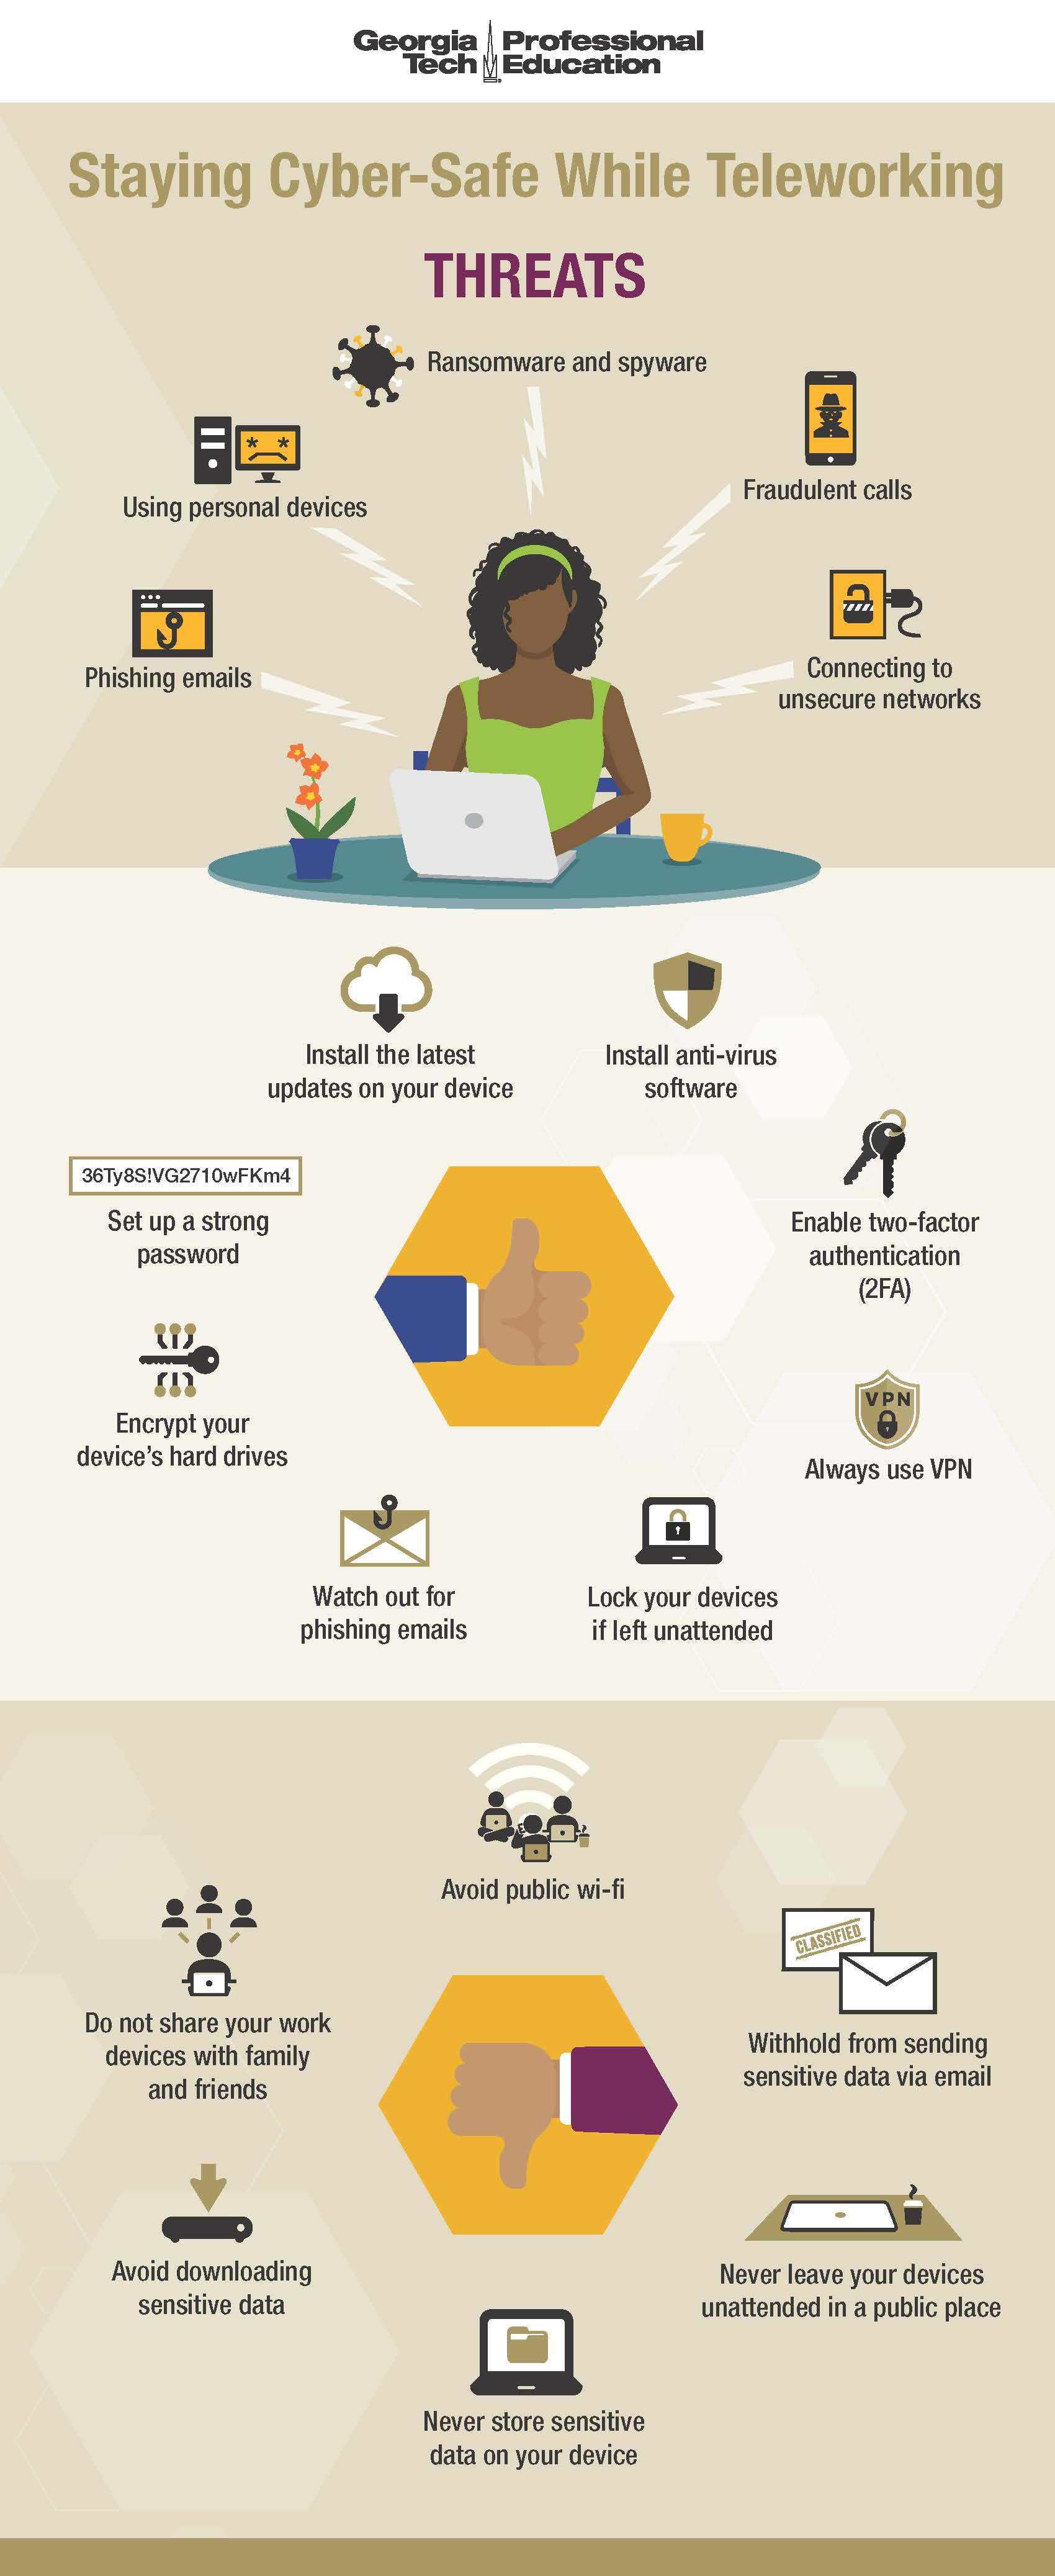 Infographic for how to stay cyber-safe while teleworking